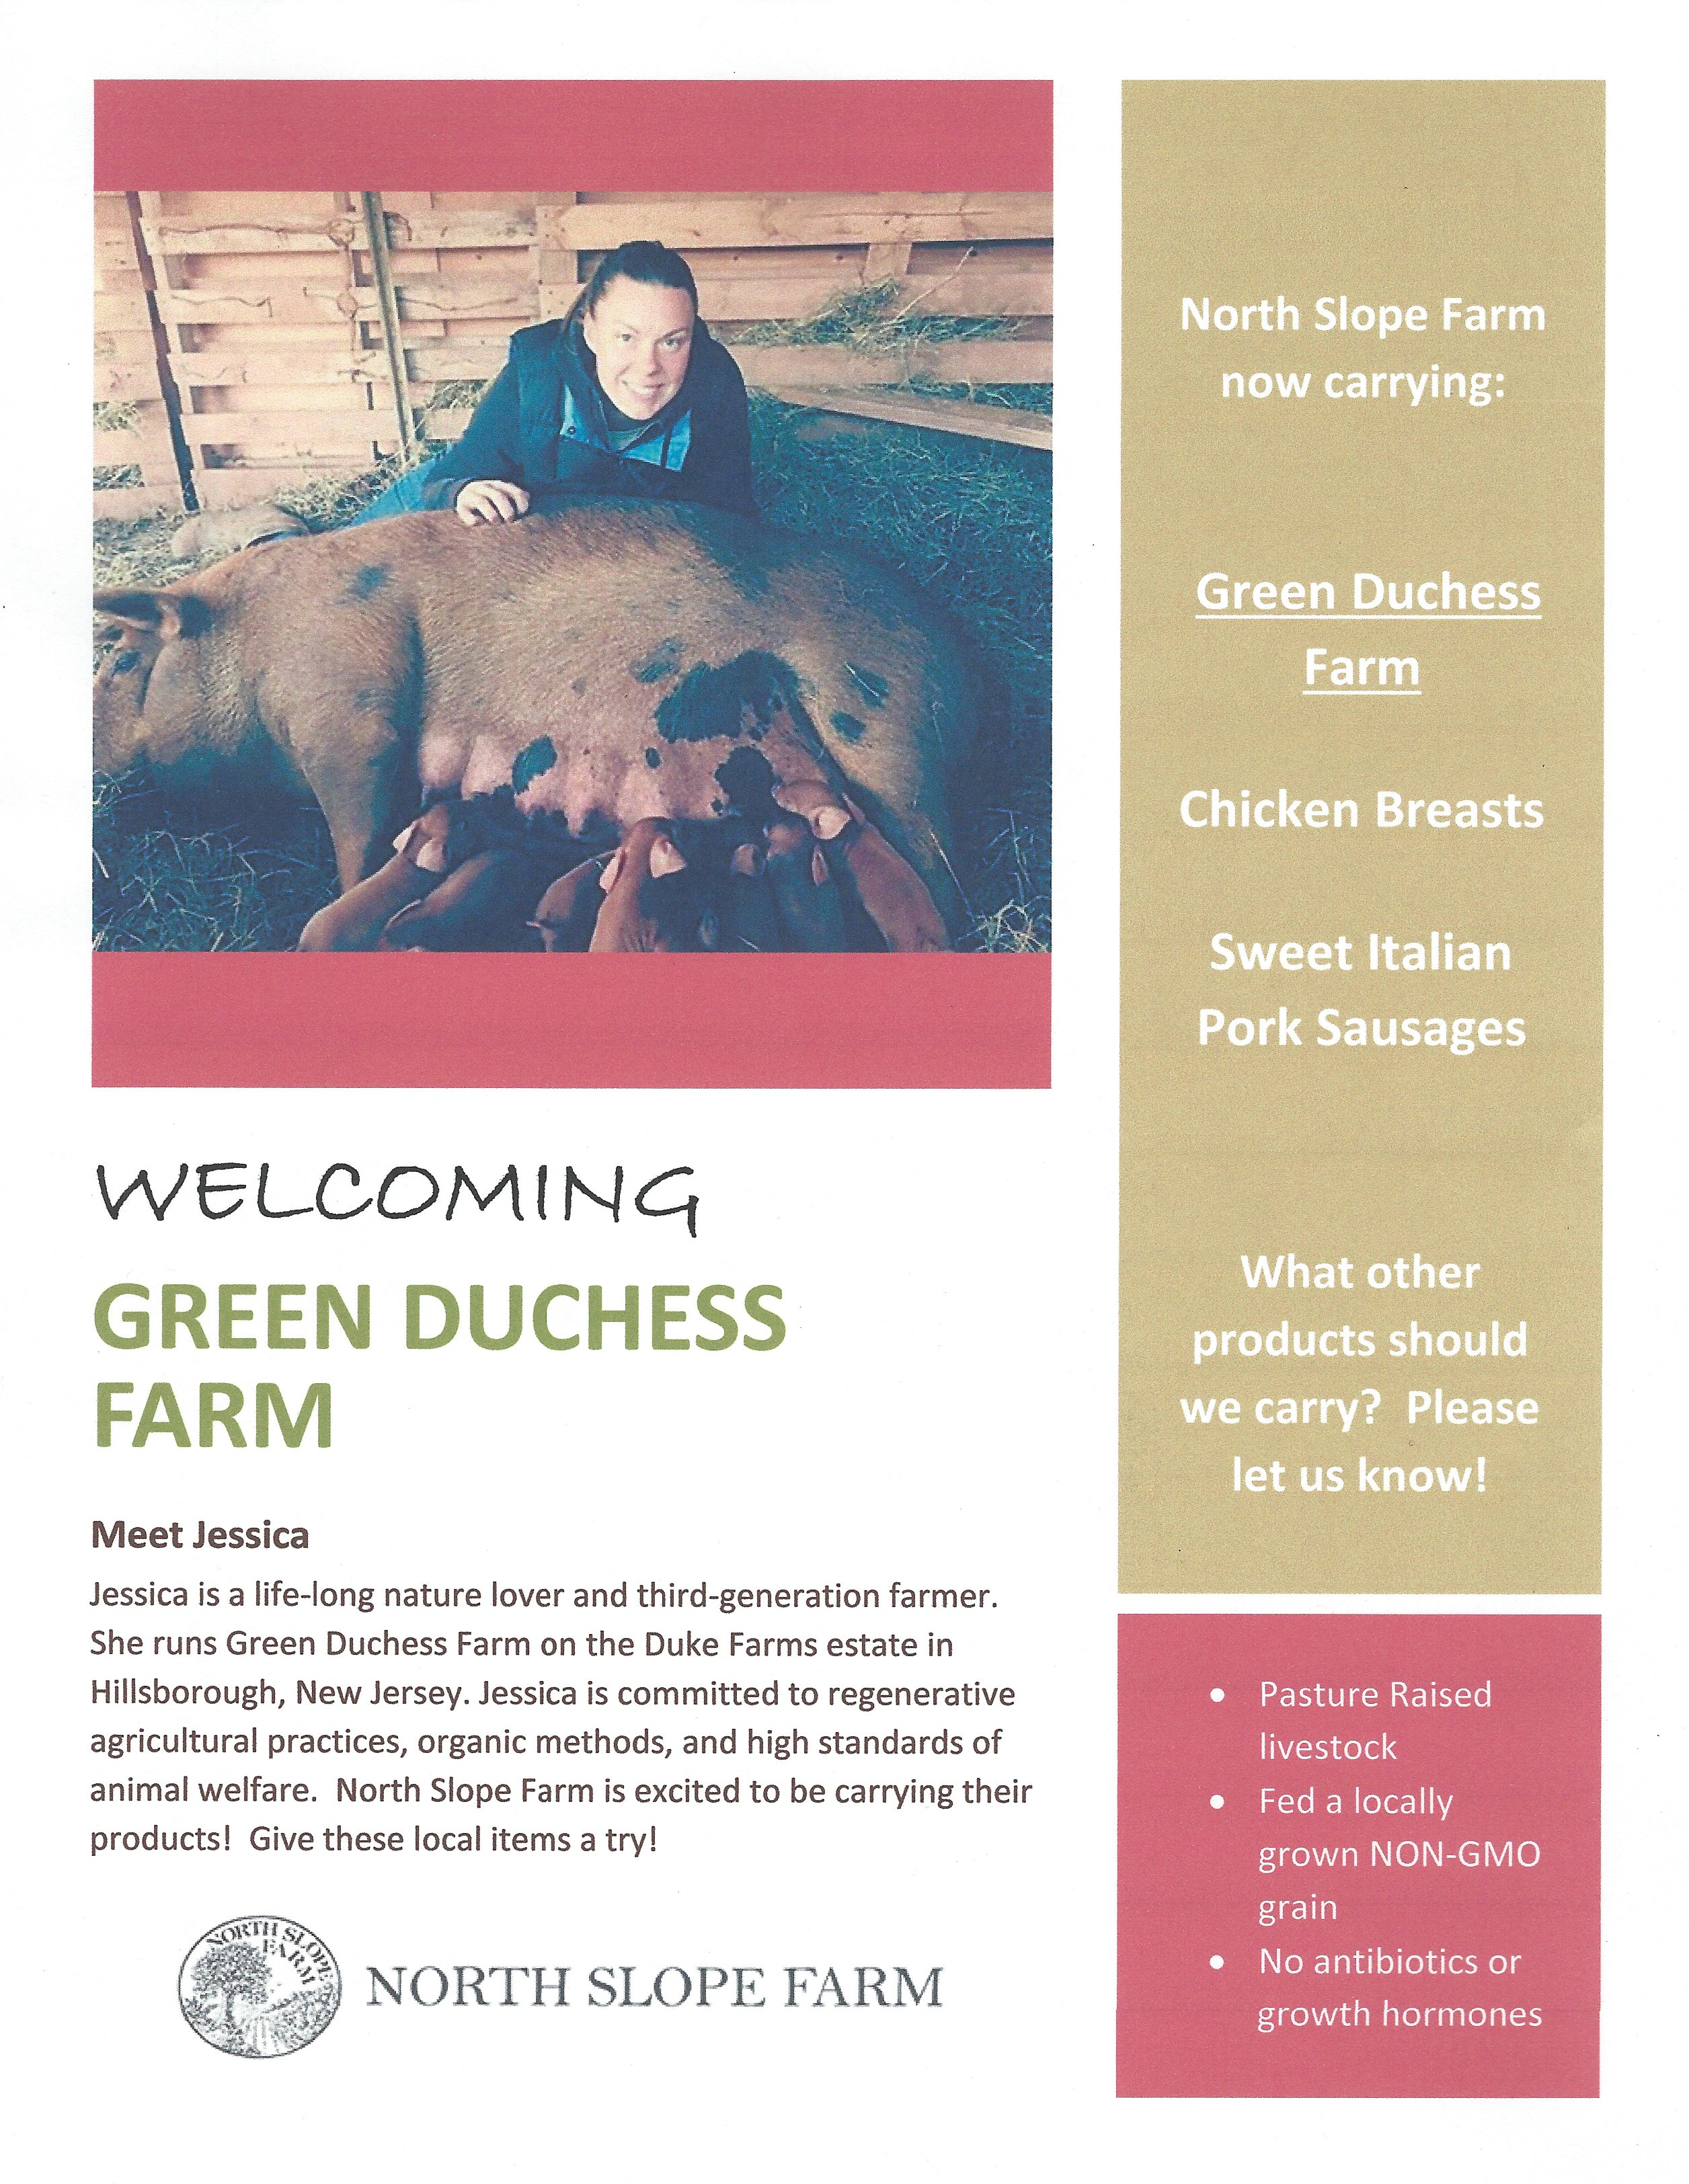 Green Duchess Farm